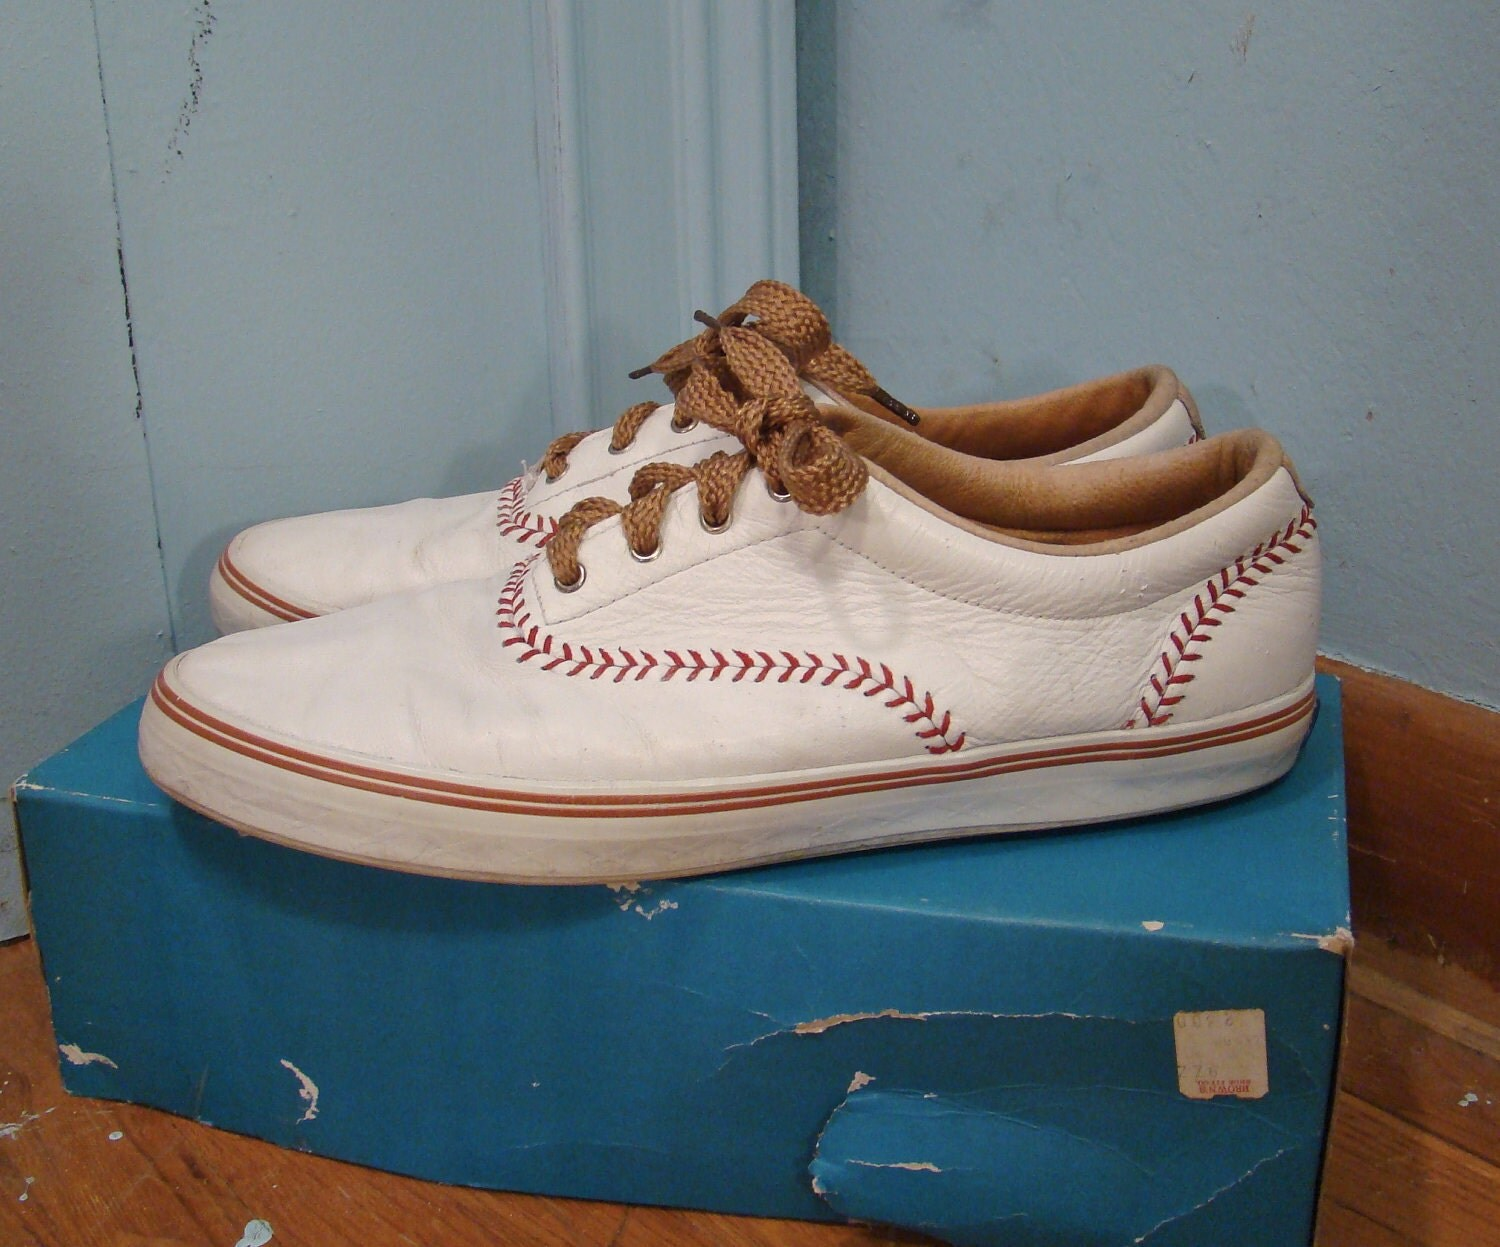 baseball keds tennis shoes white leather 1990 s by